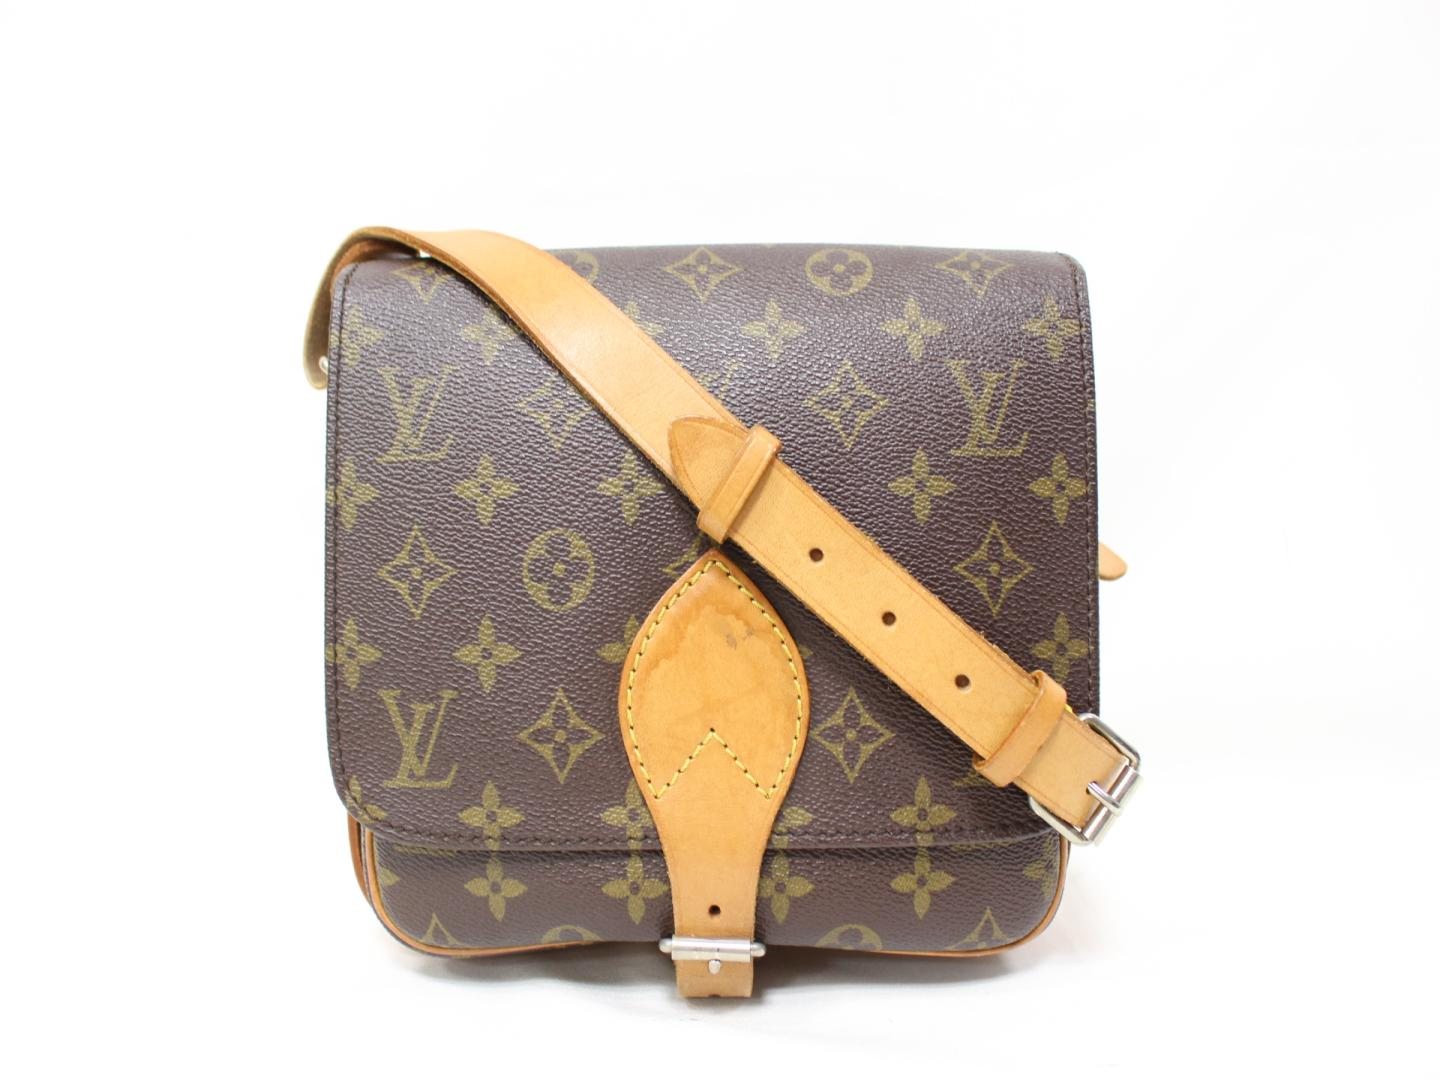 BRANDOFF  Authentic LOUIS VUITTON Cartouchiere Shoulder Bag M51253 ... 4892a306ba45b